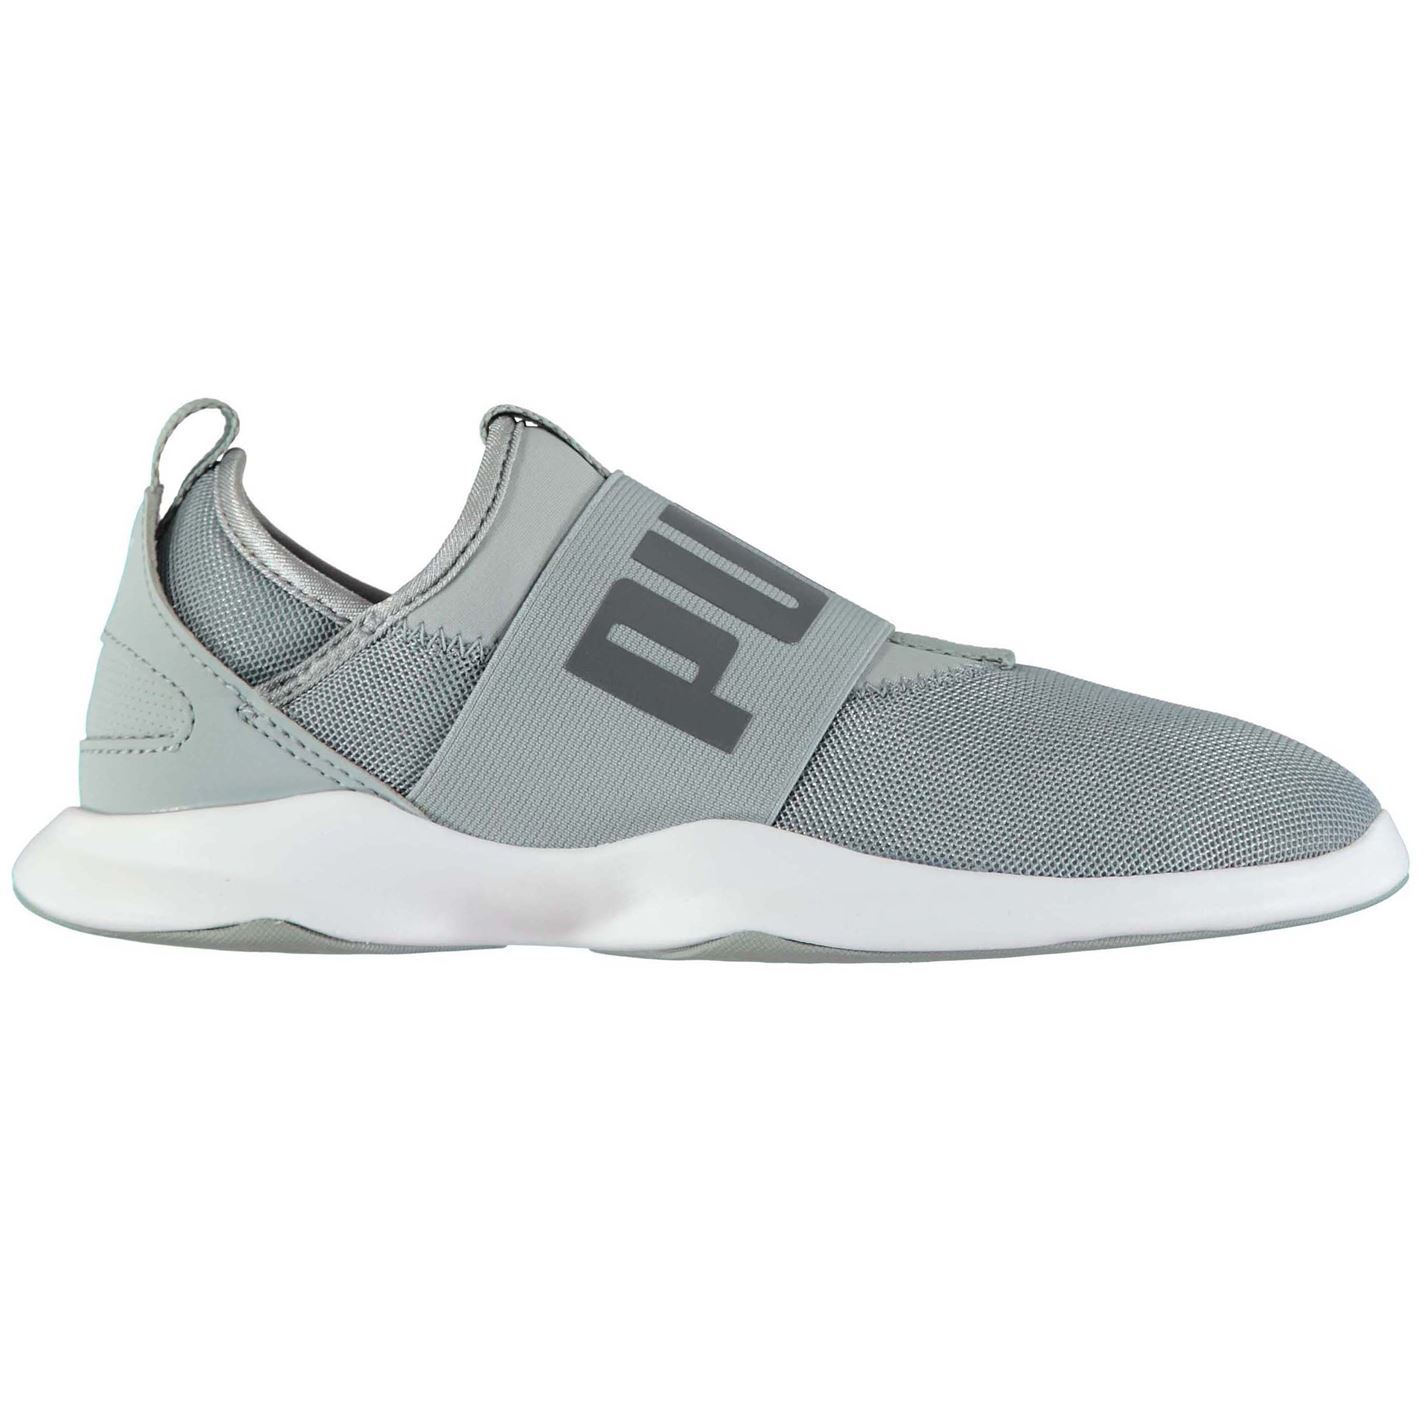 ... Puma Dare Running Shoes Womens Grey Run Jogging Trainers Sneakers ... 4f33486b4300